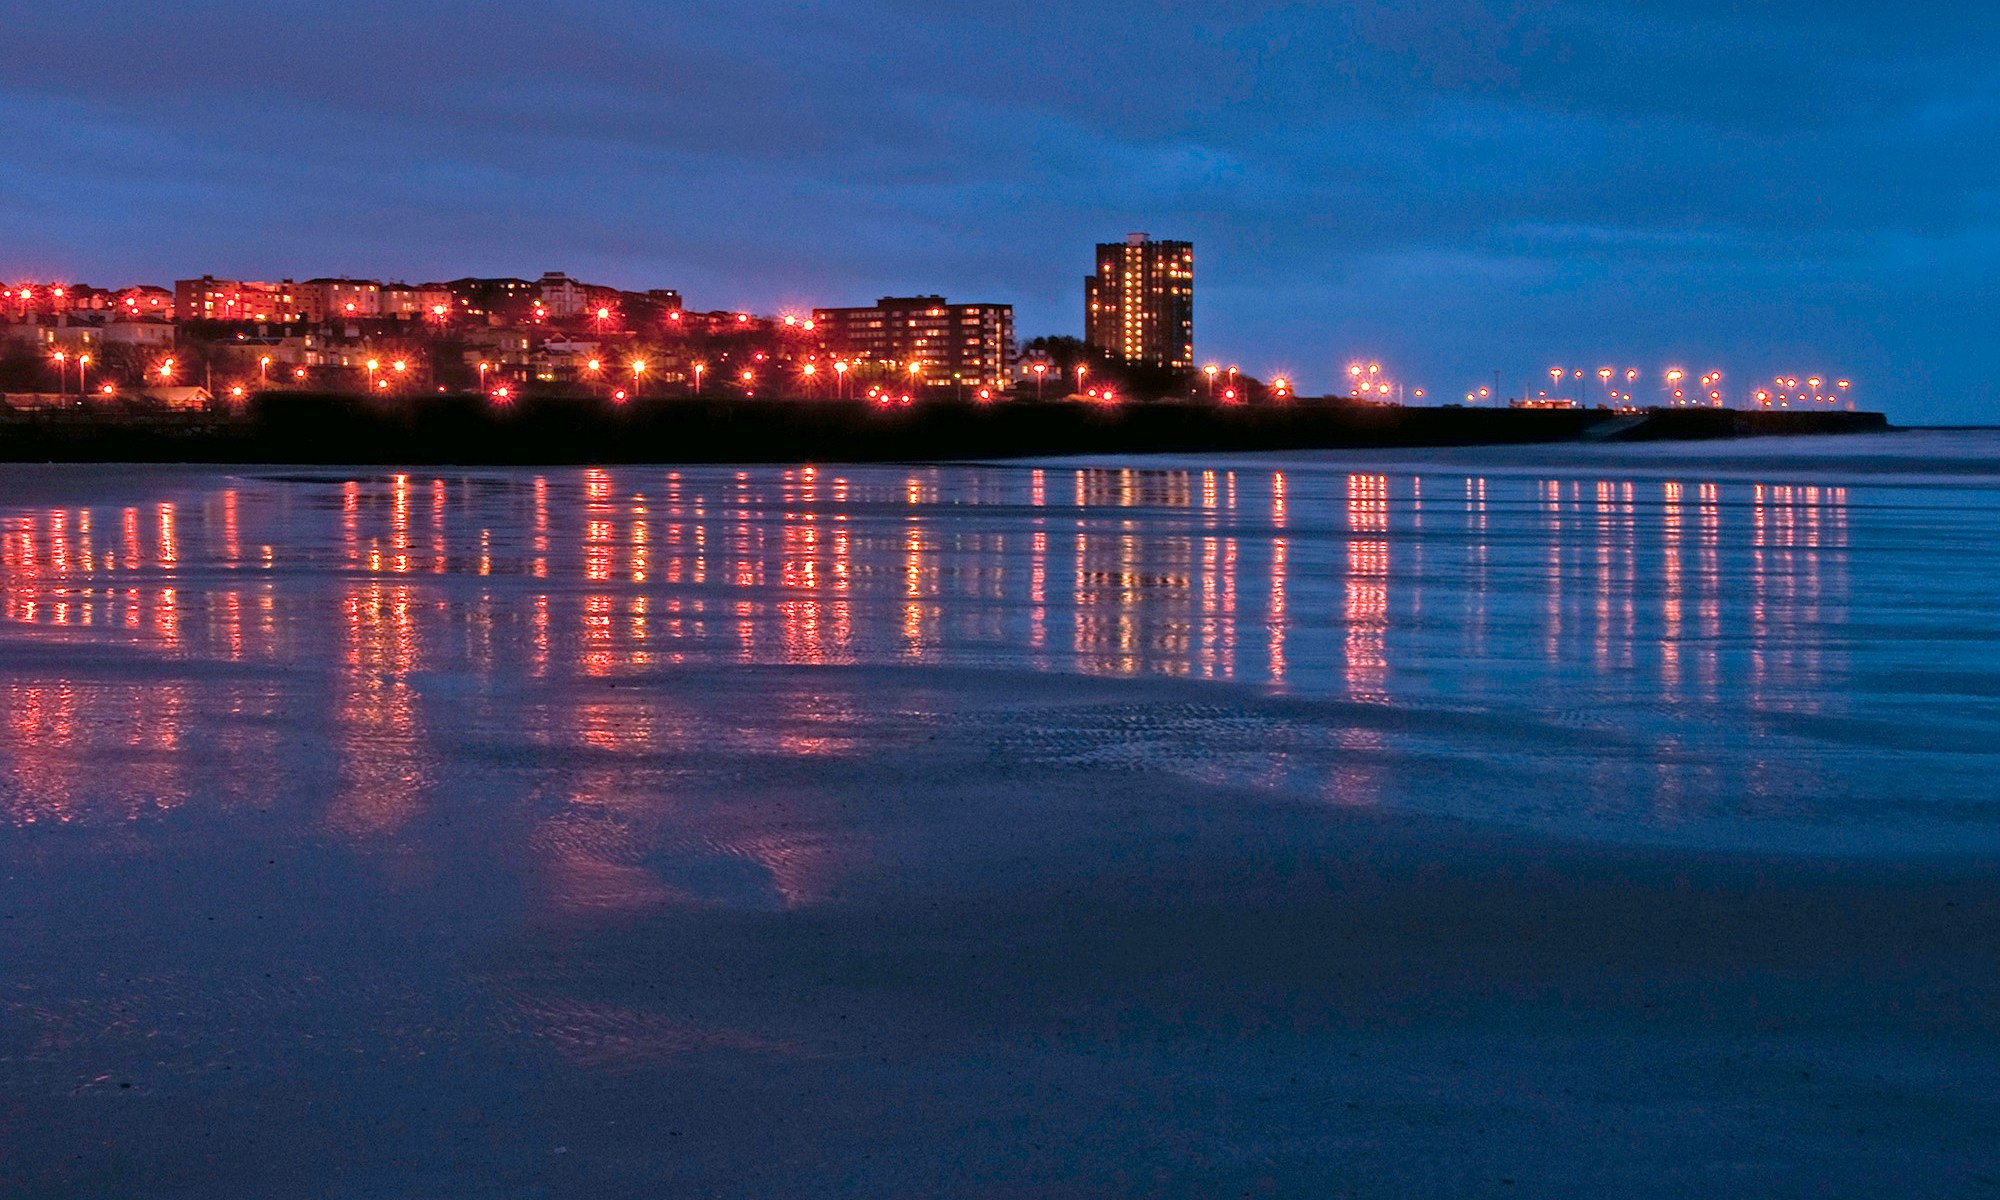 New Brighton Promenade at Night